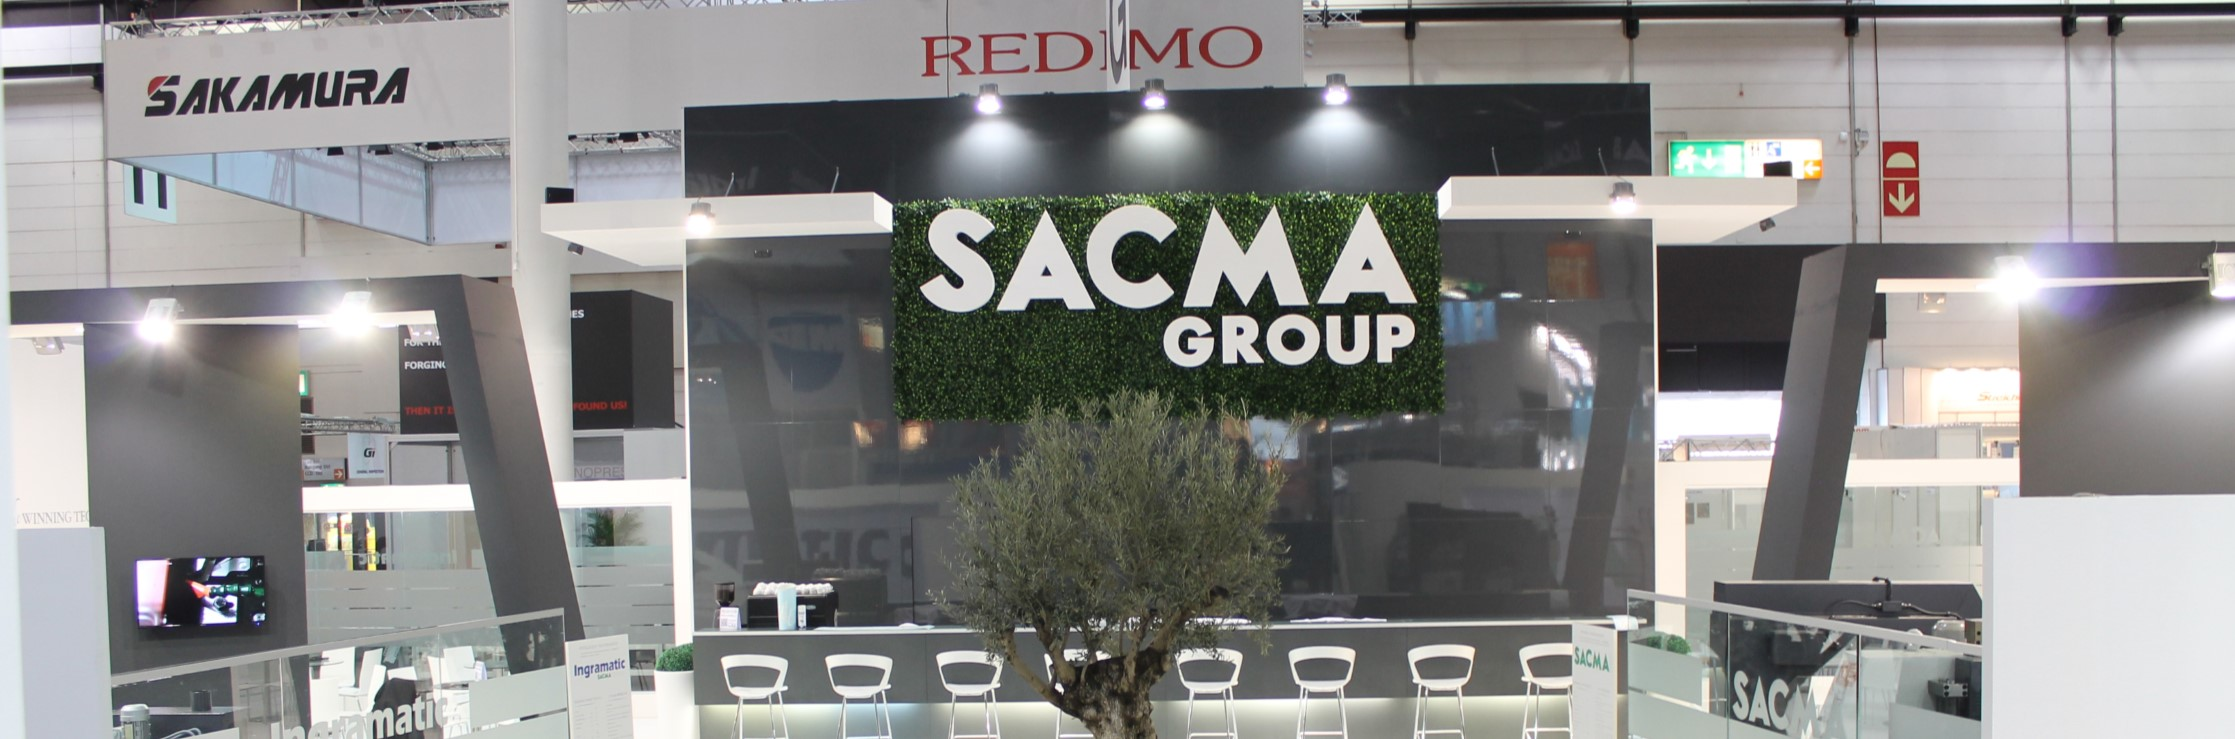 SACMA GROUP LEADING WIRE 2016